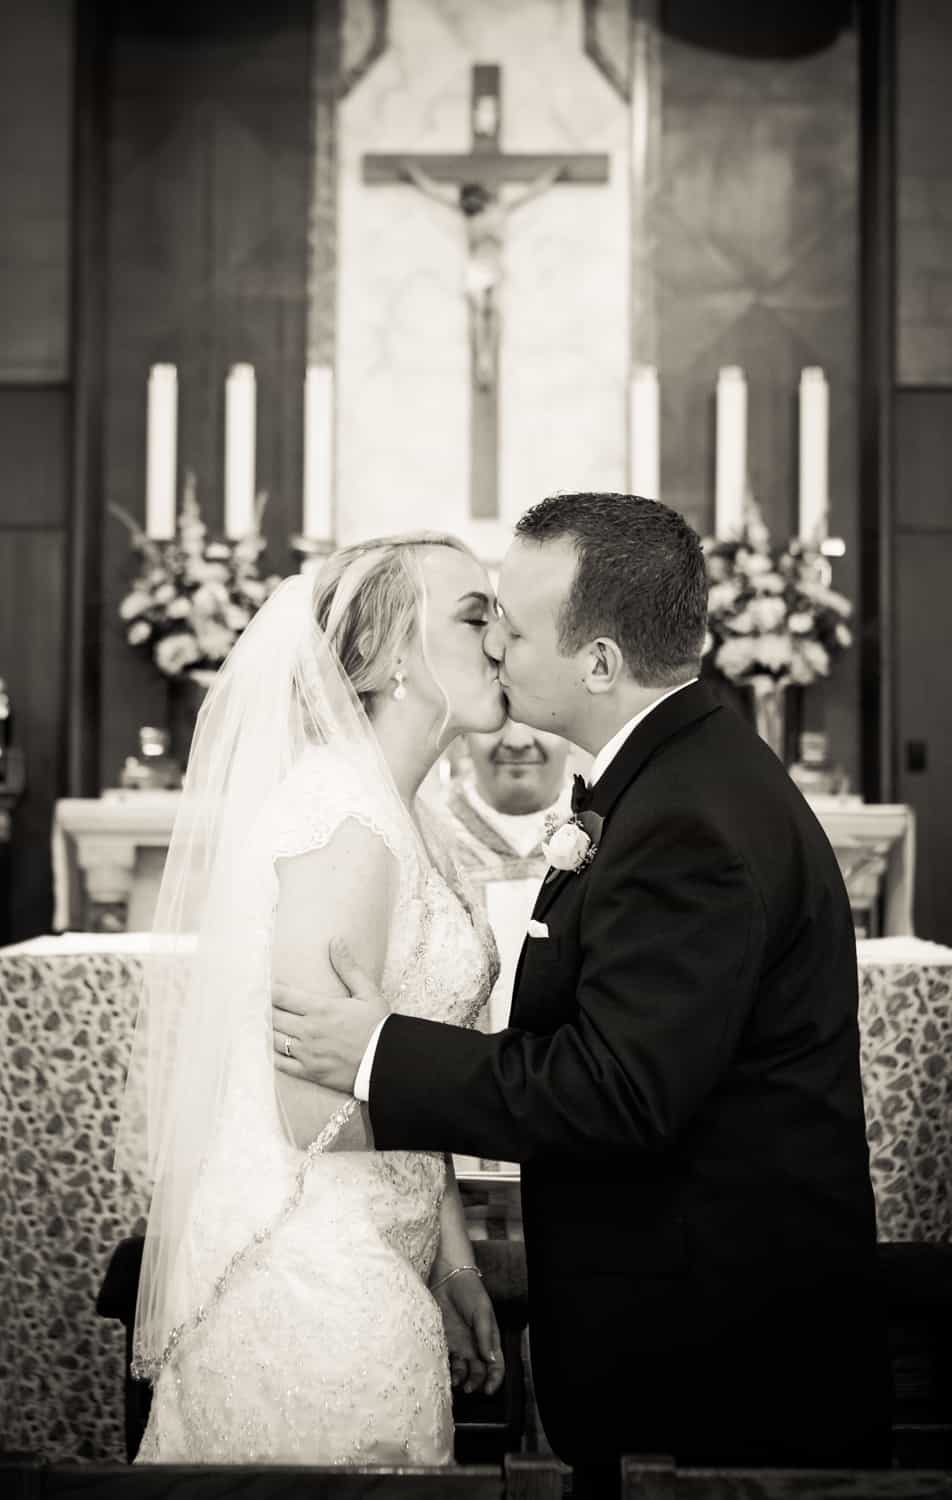 Black and white photo of bride and groom kissing after ceremony